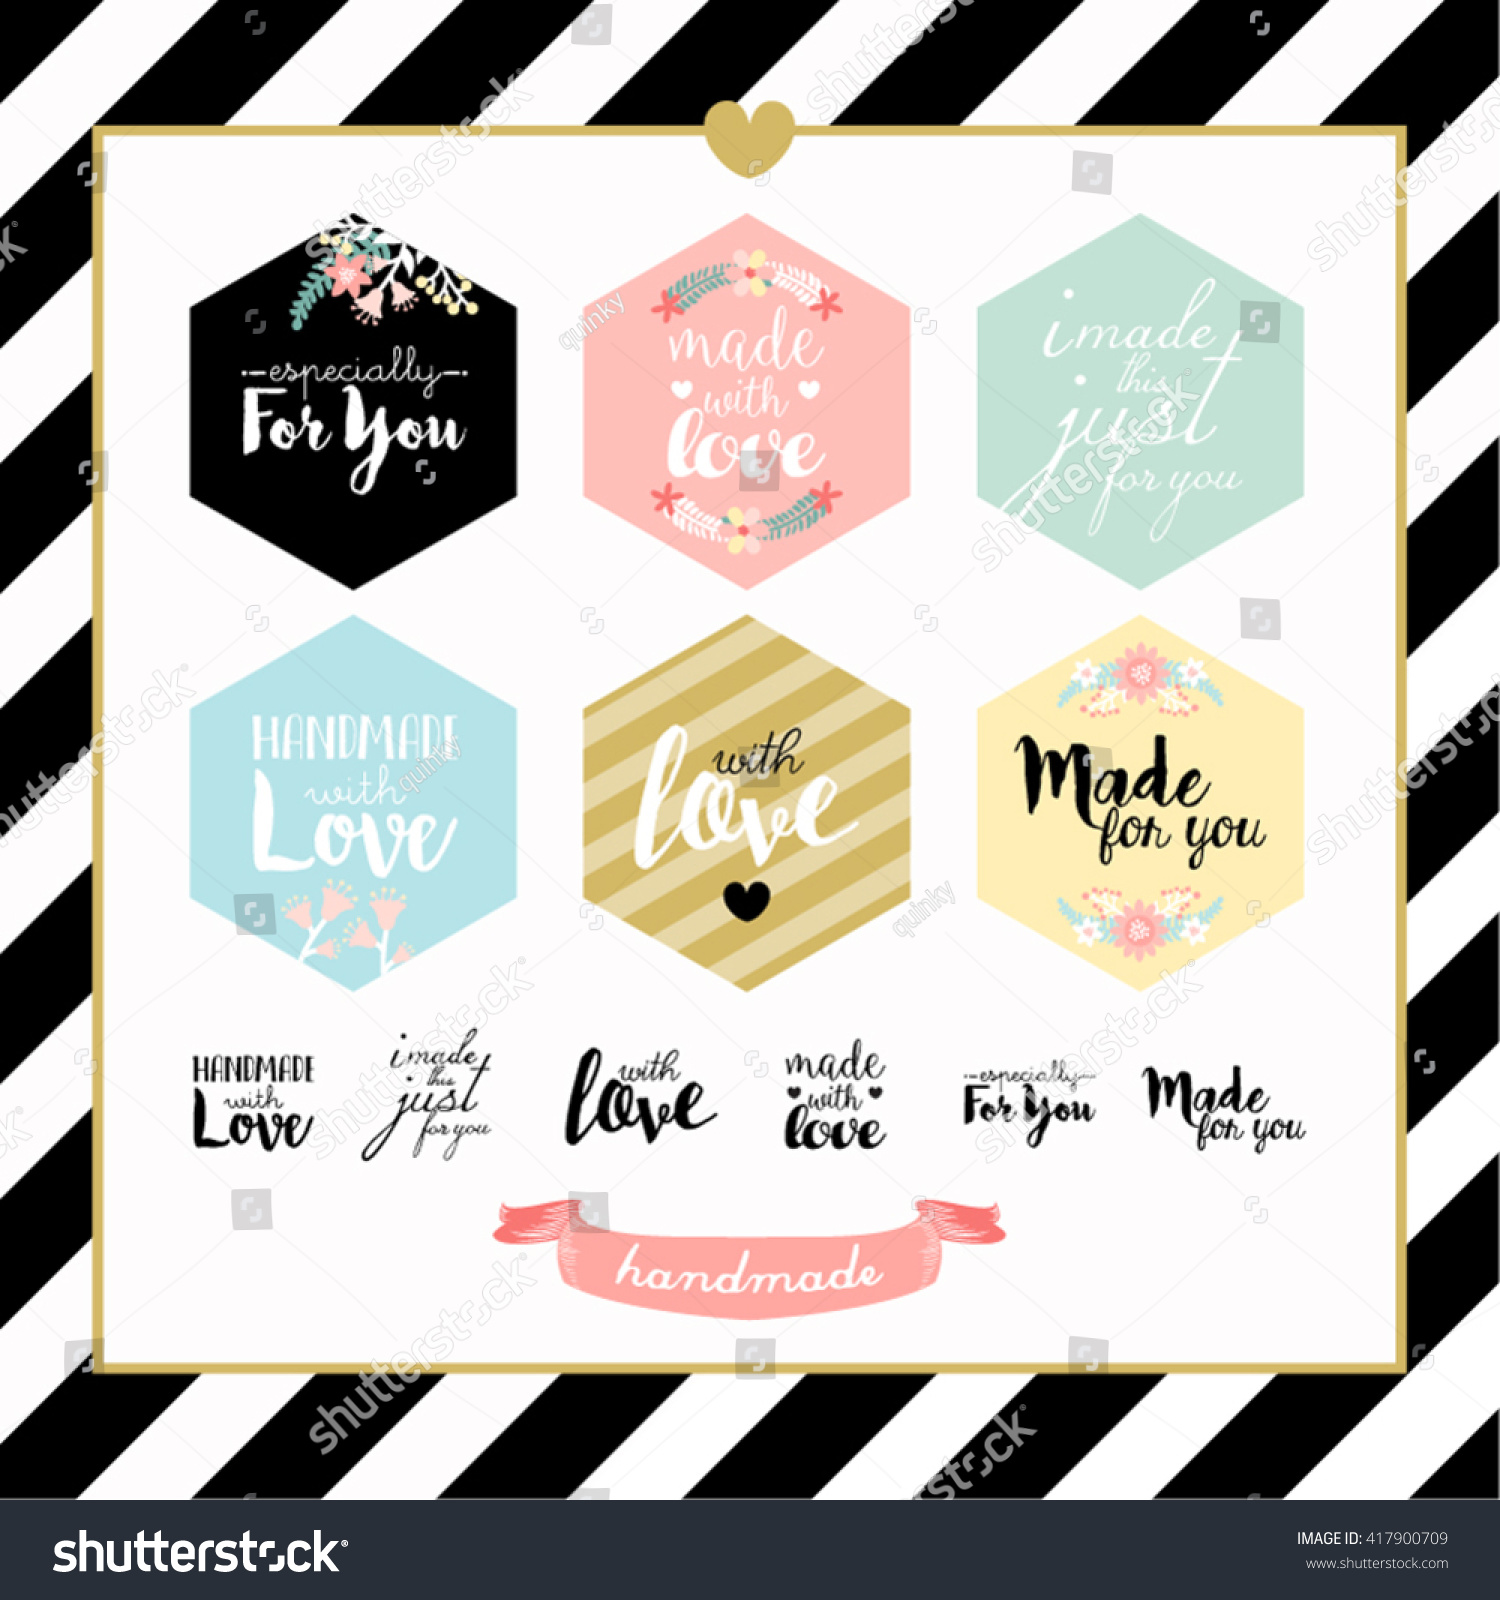 Handmade with Love Typography Stamp Vector Design